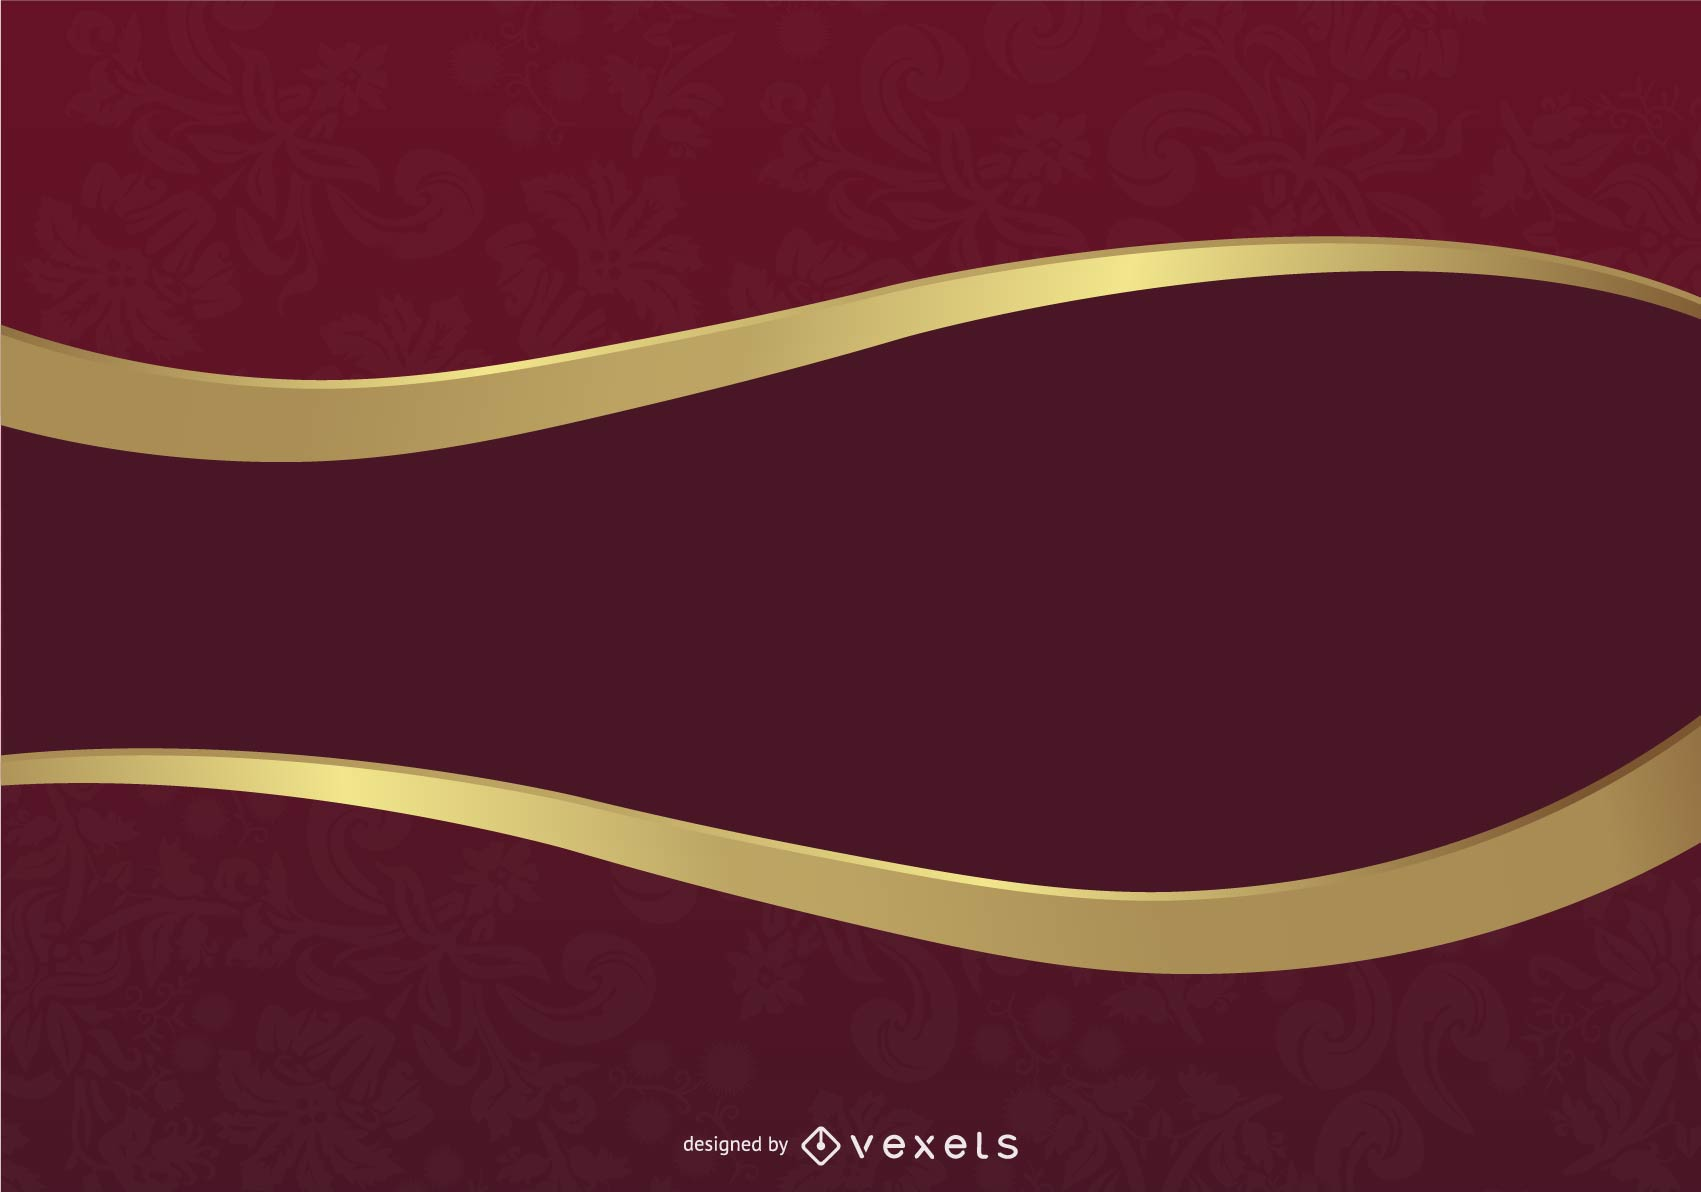 Classic luxury background in red and gold